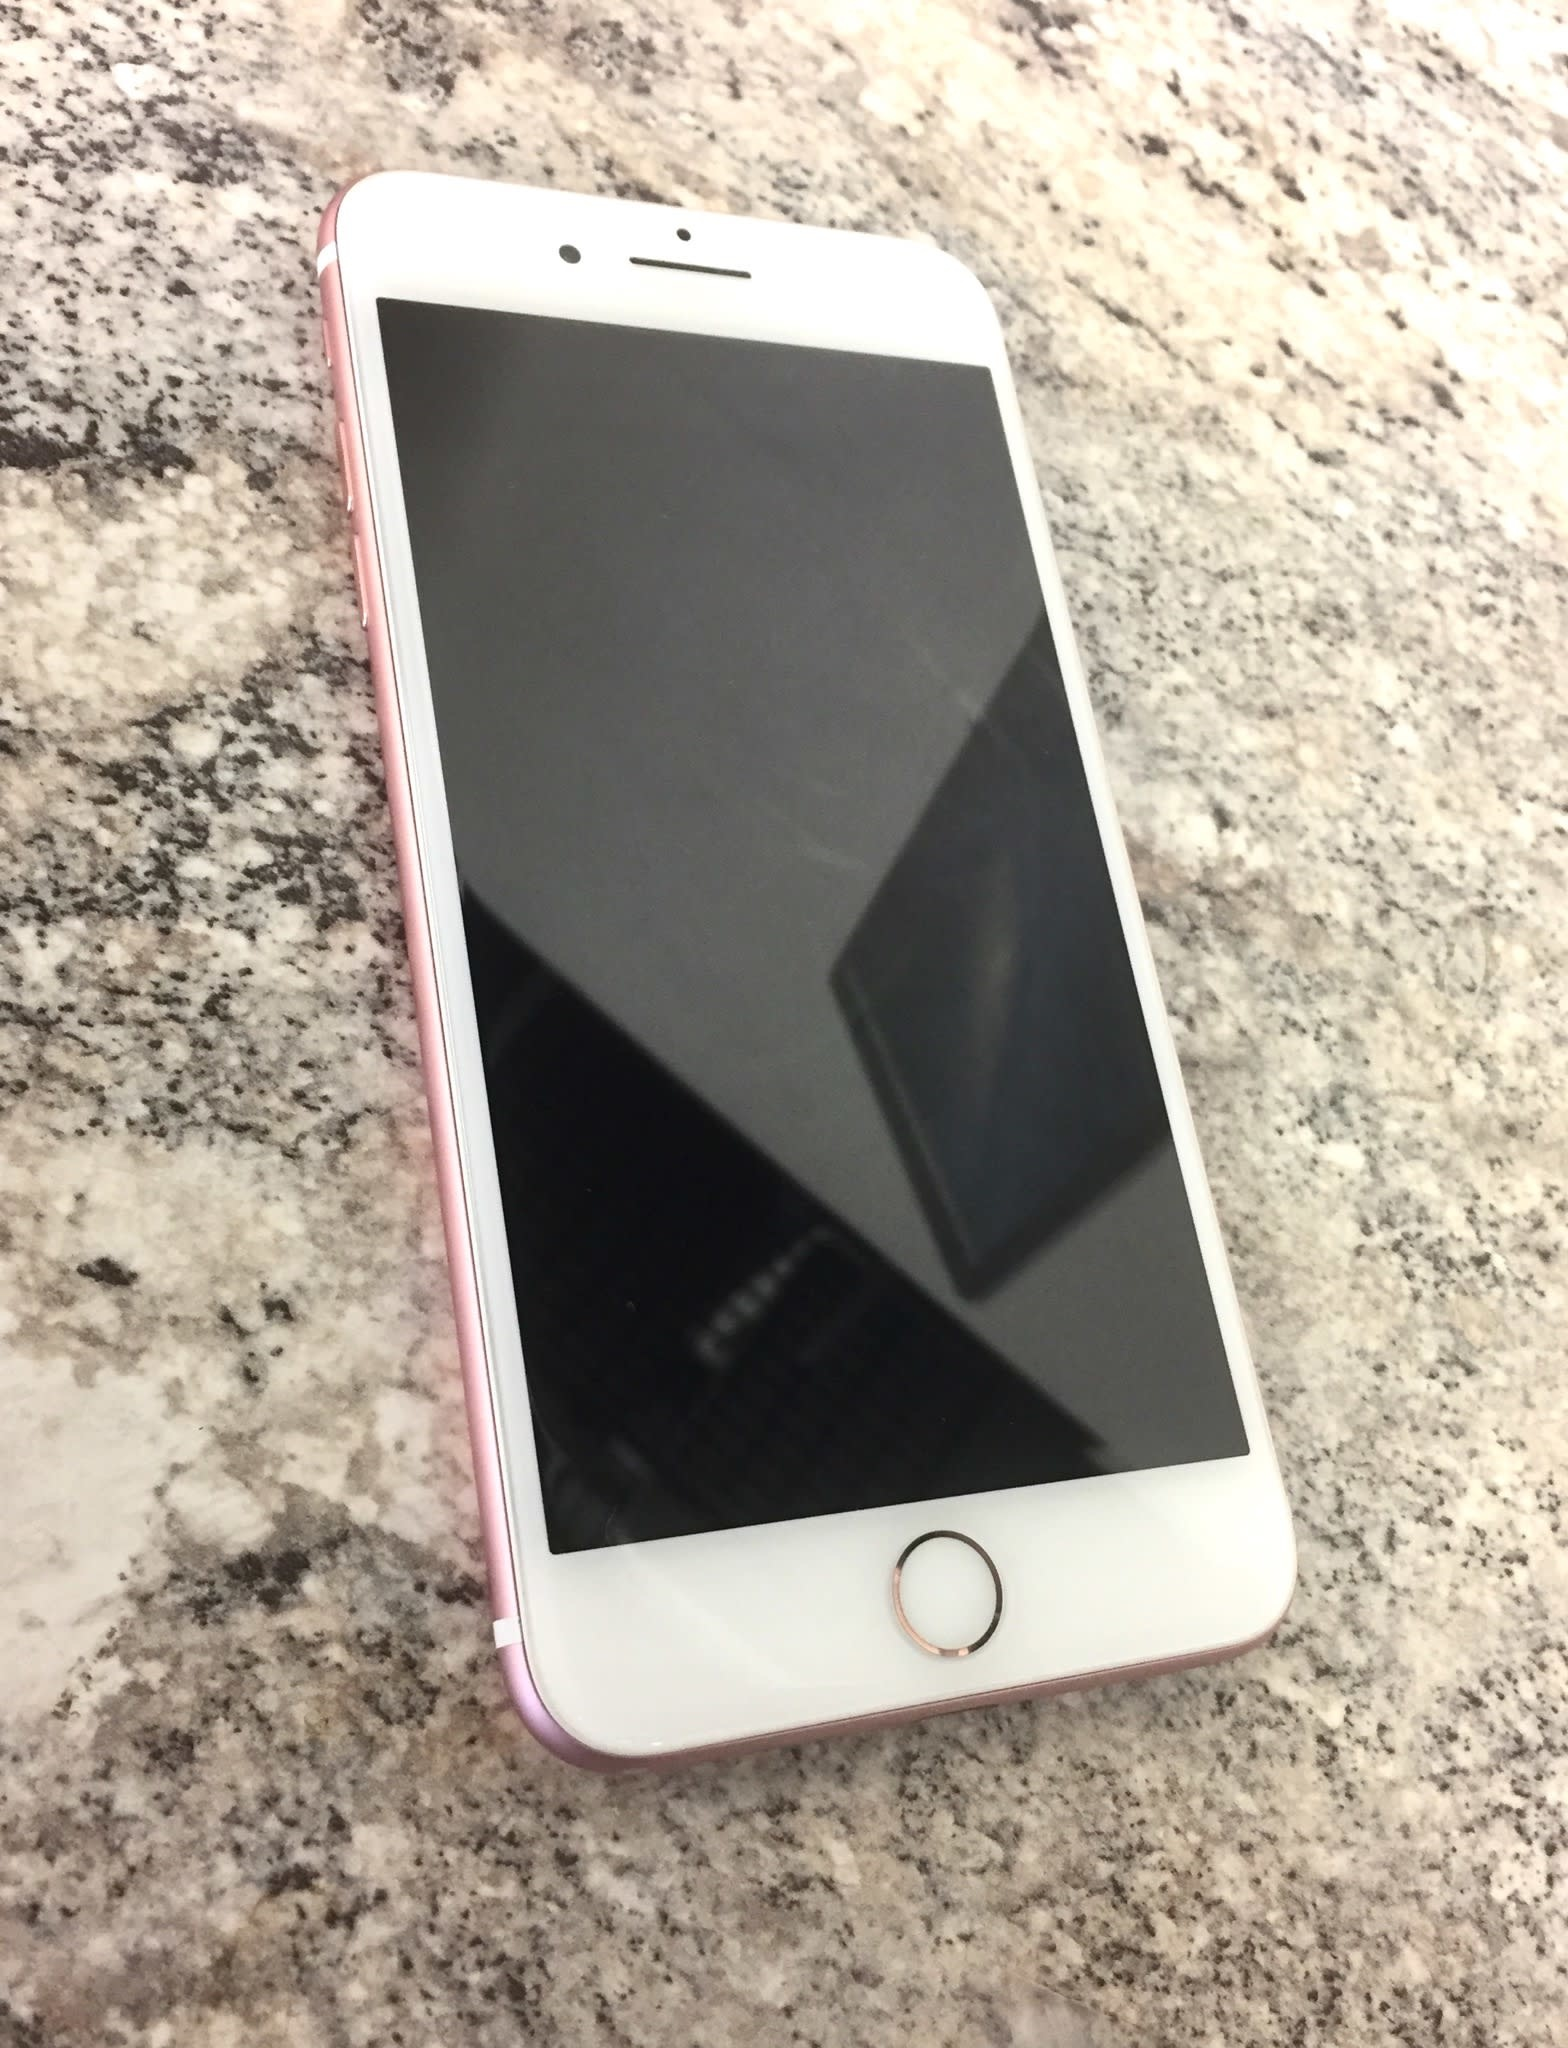 Sprint/Boost Only - iPhone 7 Plus - 32GB - Rose Gold